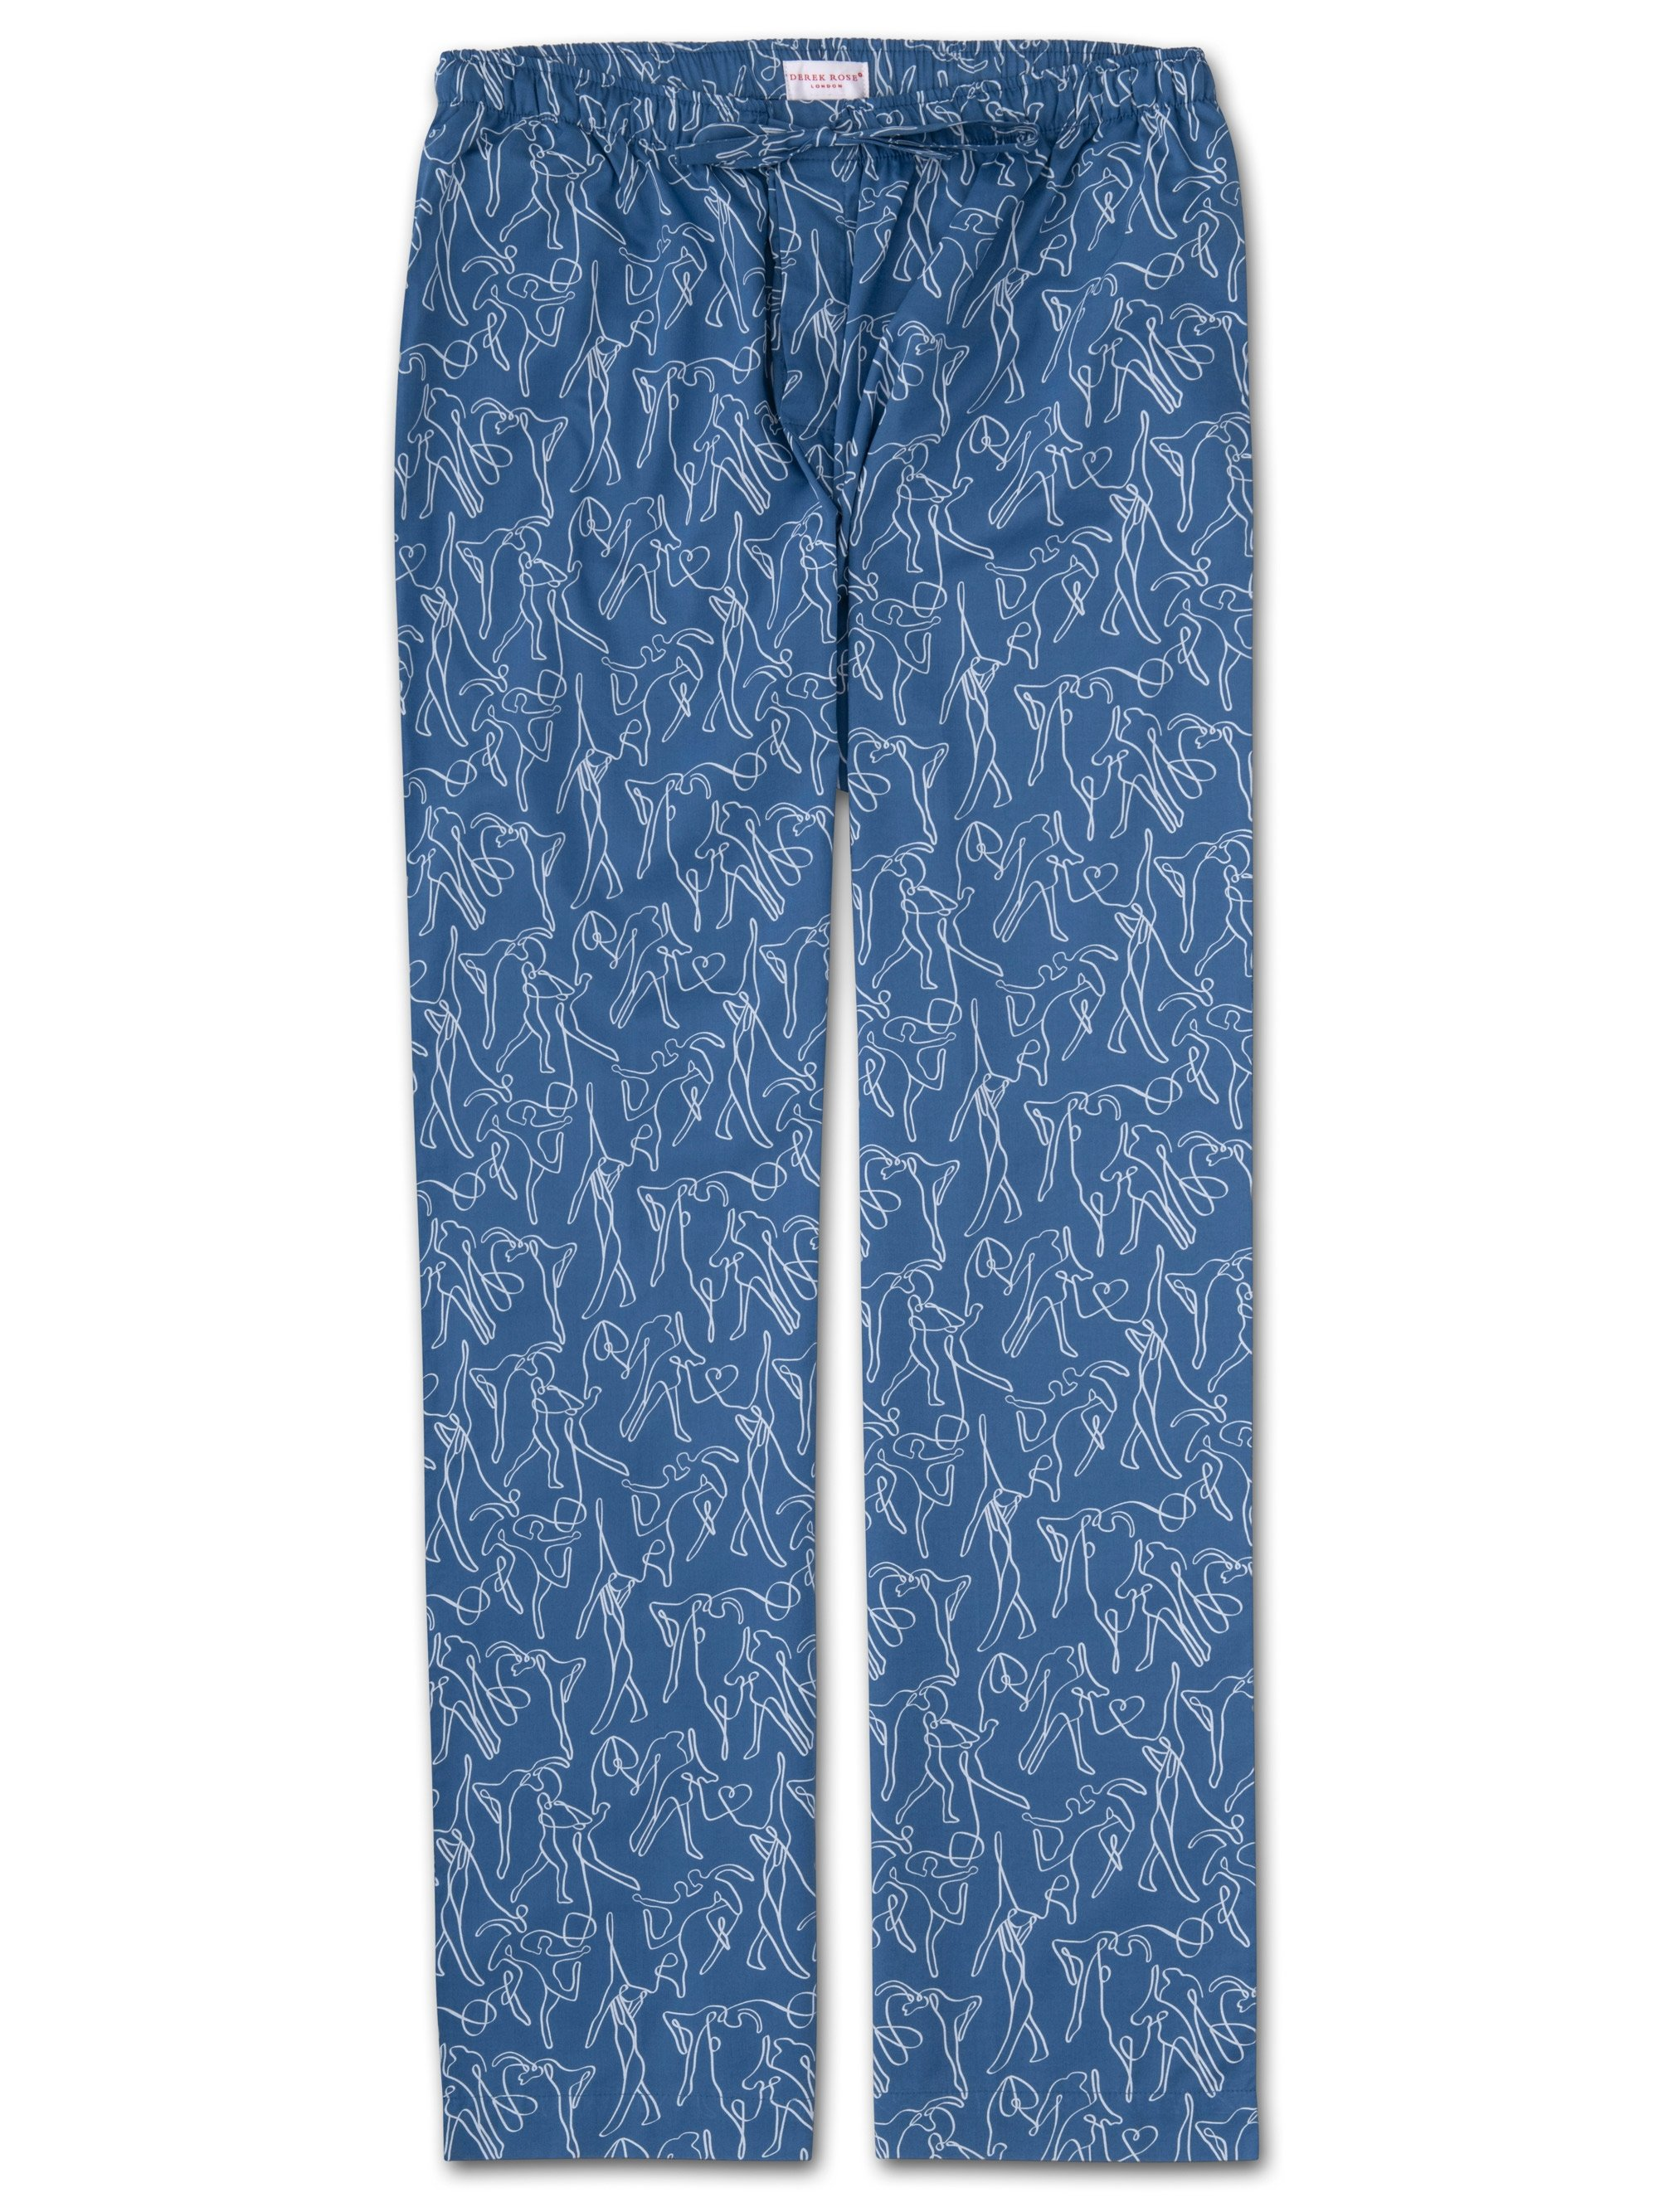 Men's Lounge Trousers Nelson 76 Cotton Batiste Blue